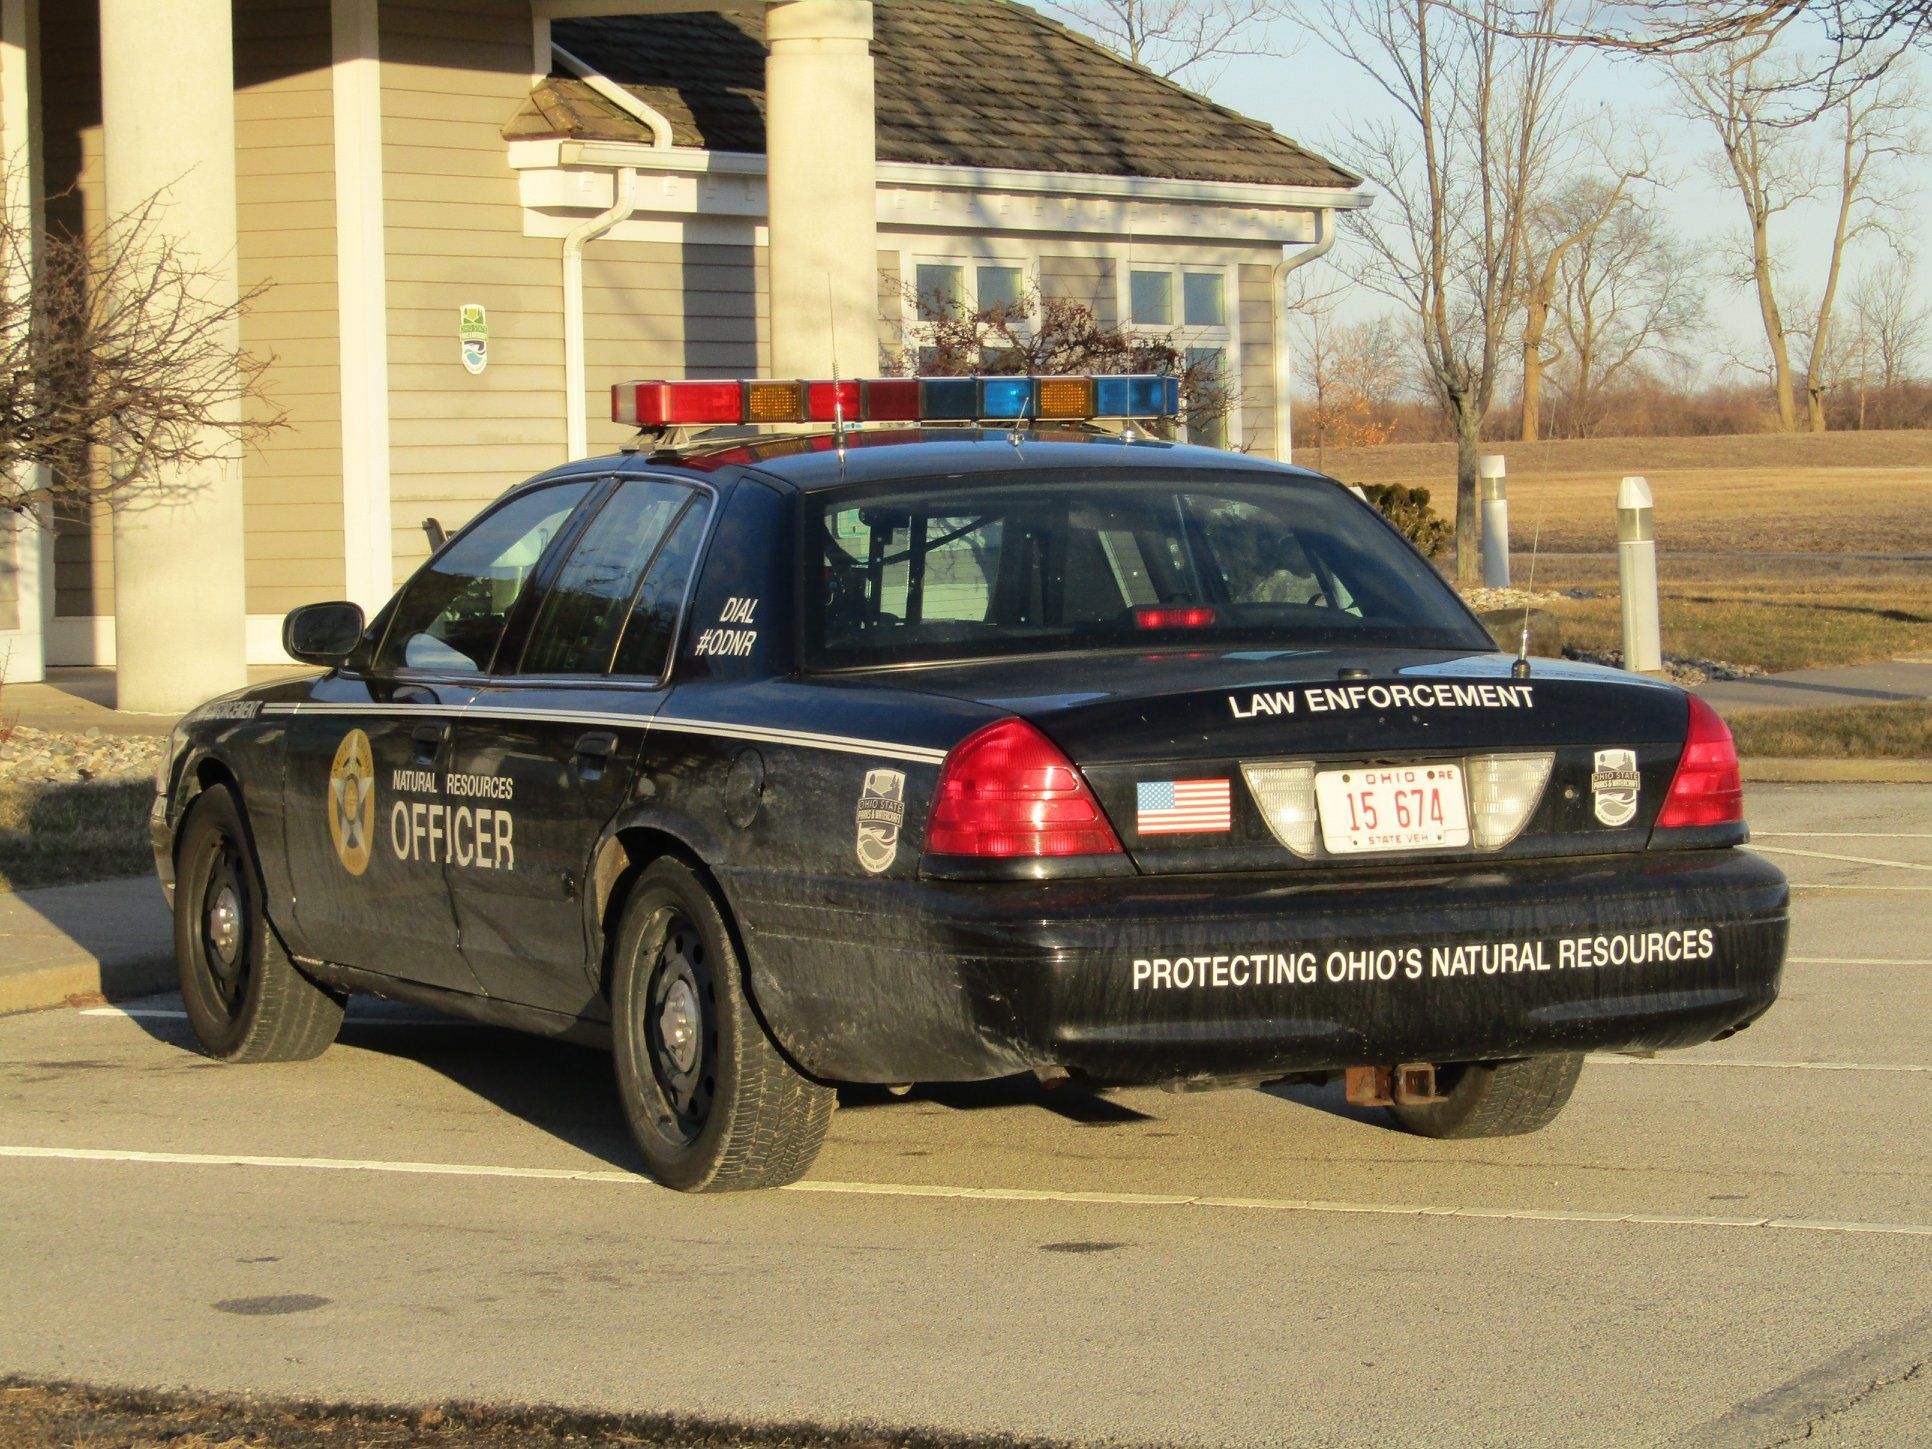 Ohio Natural Resources Officer 15 674 Ford Cvpi Victoria Police Police Cars Fairlane